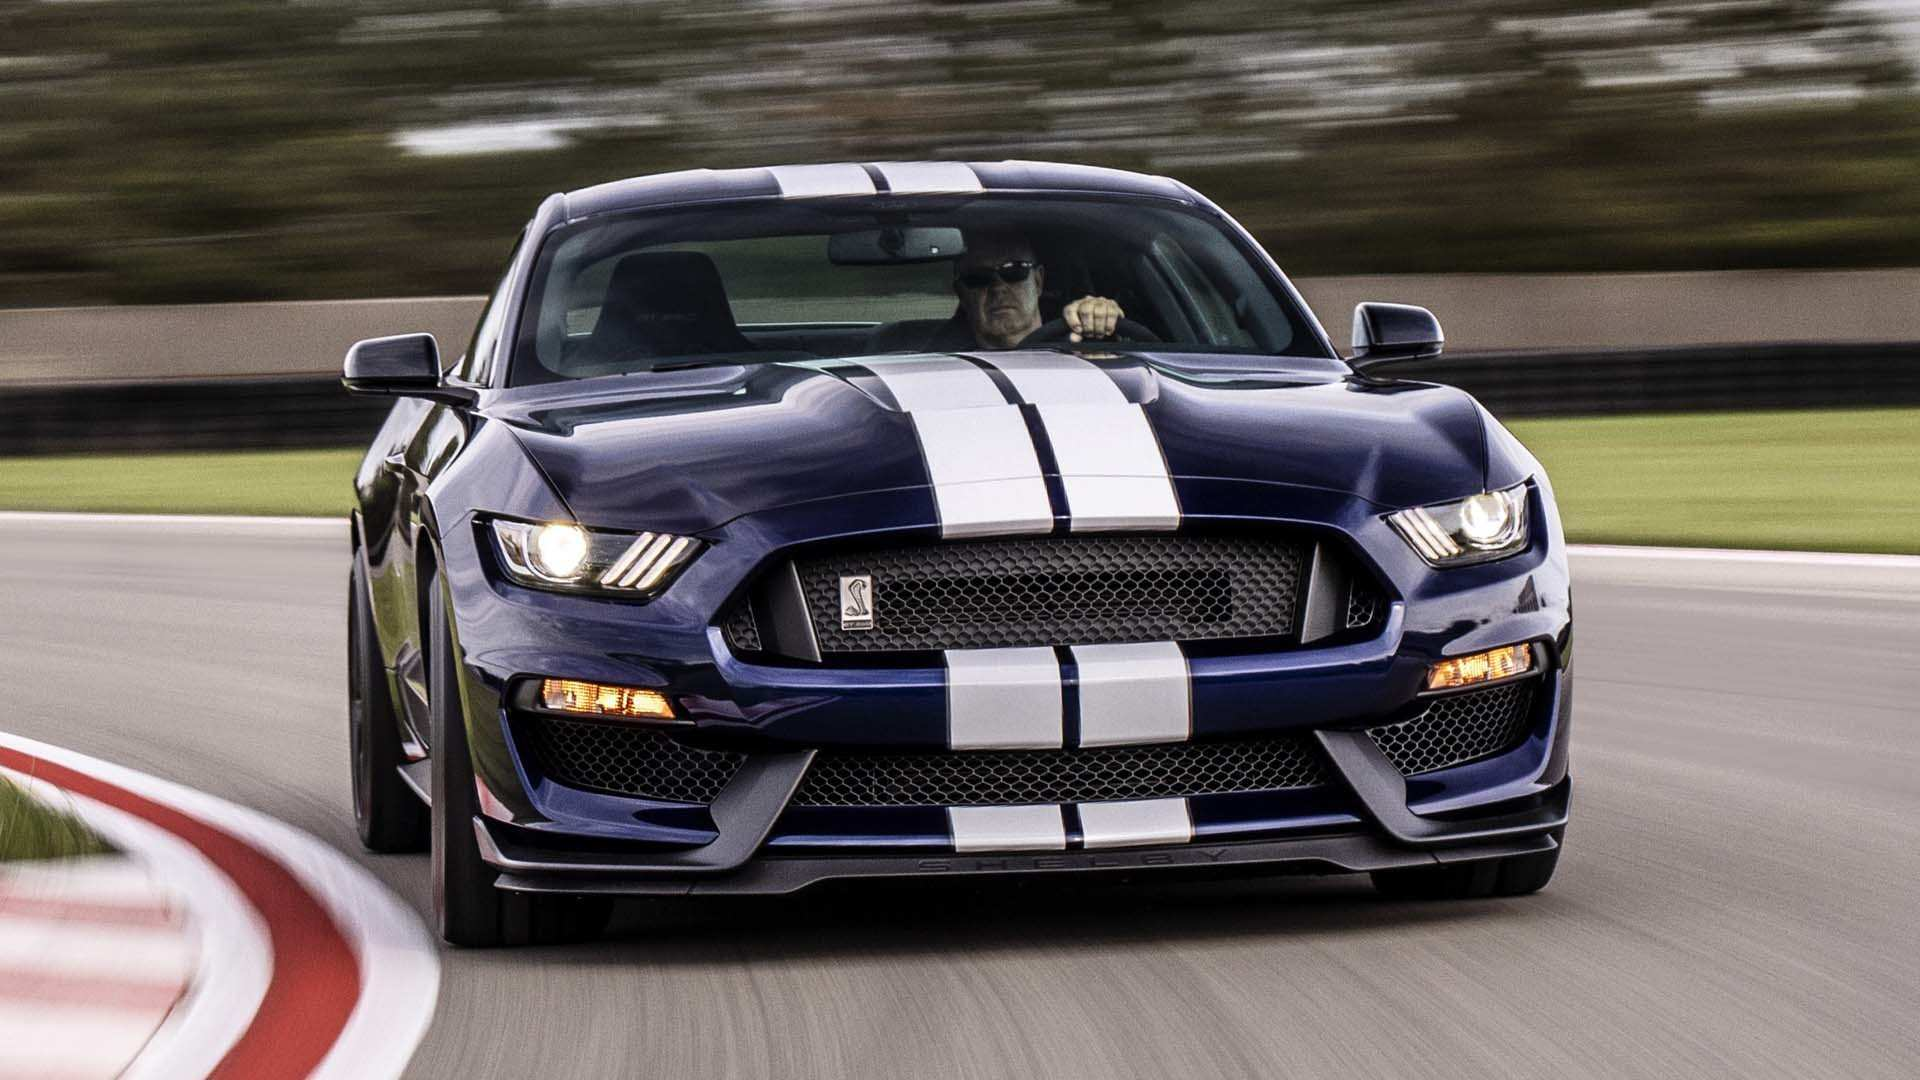 41 All New 2019 Ford Mustang Gt350 Exterior and Interior by 2019 Ford Mustang Gt350